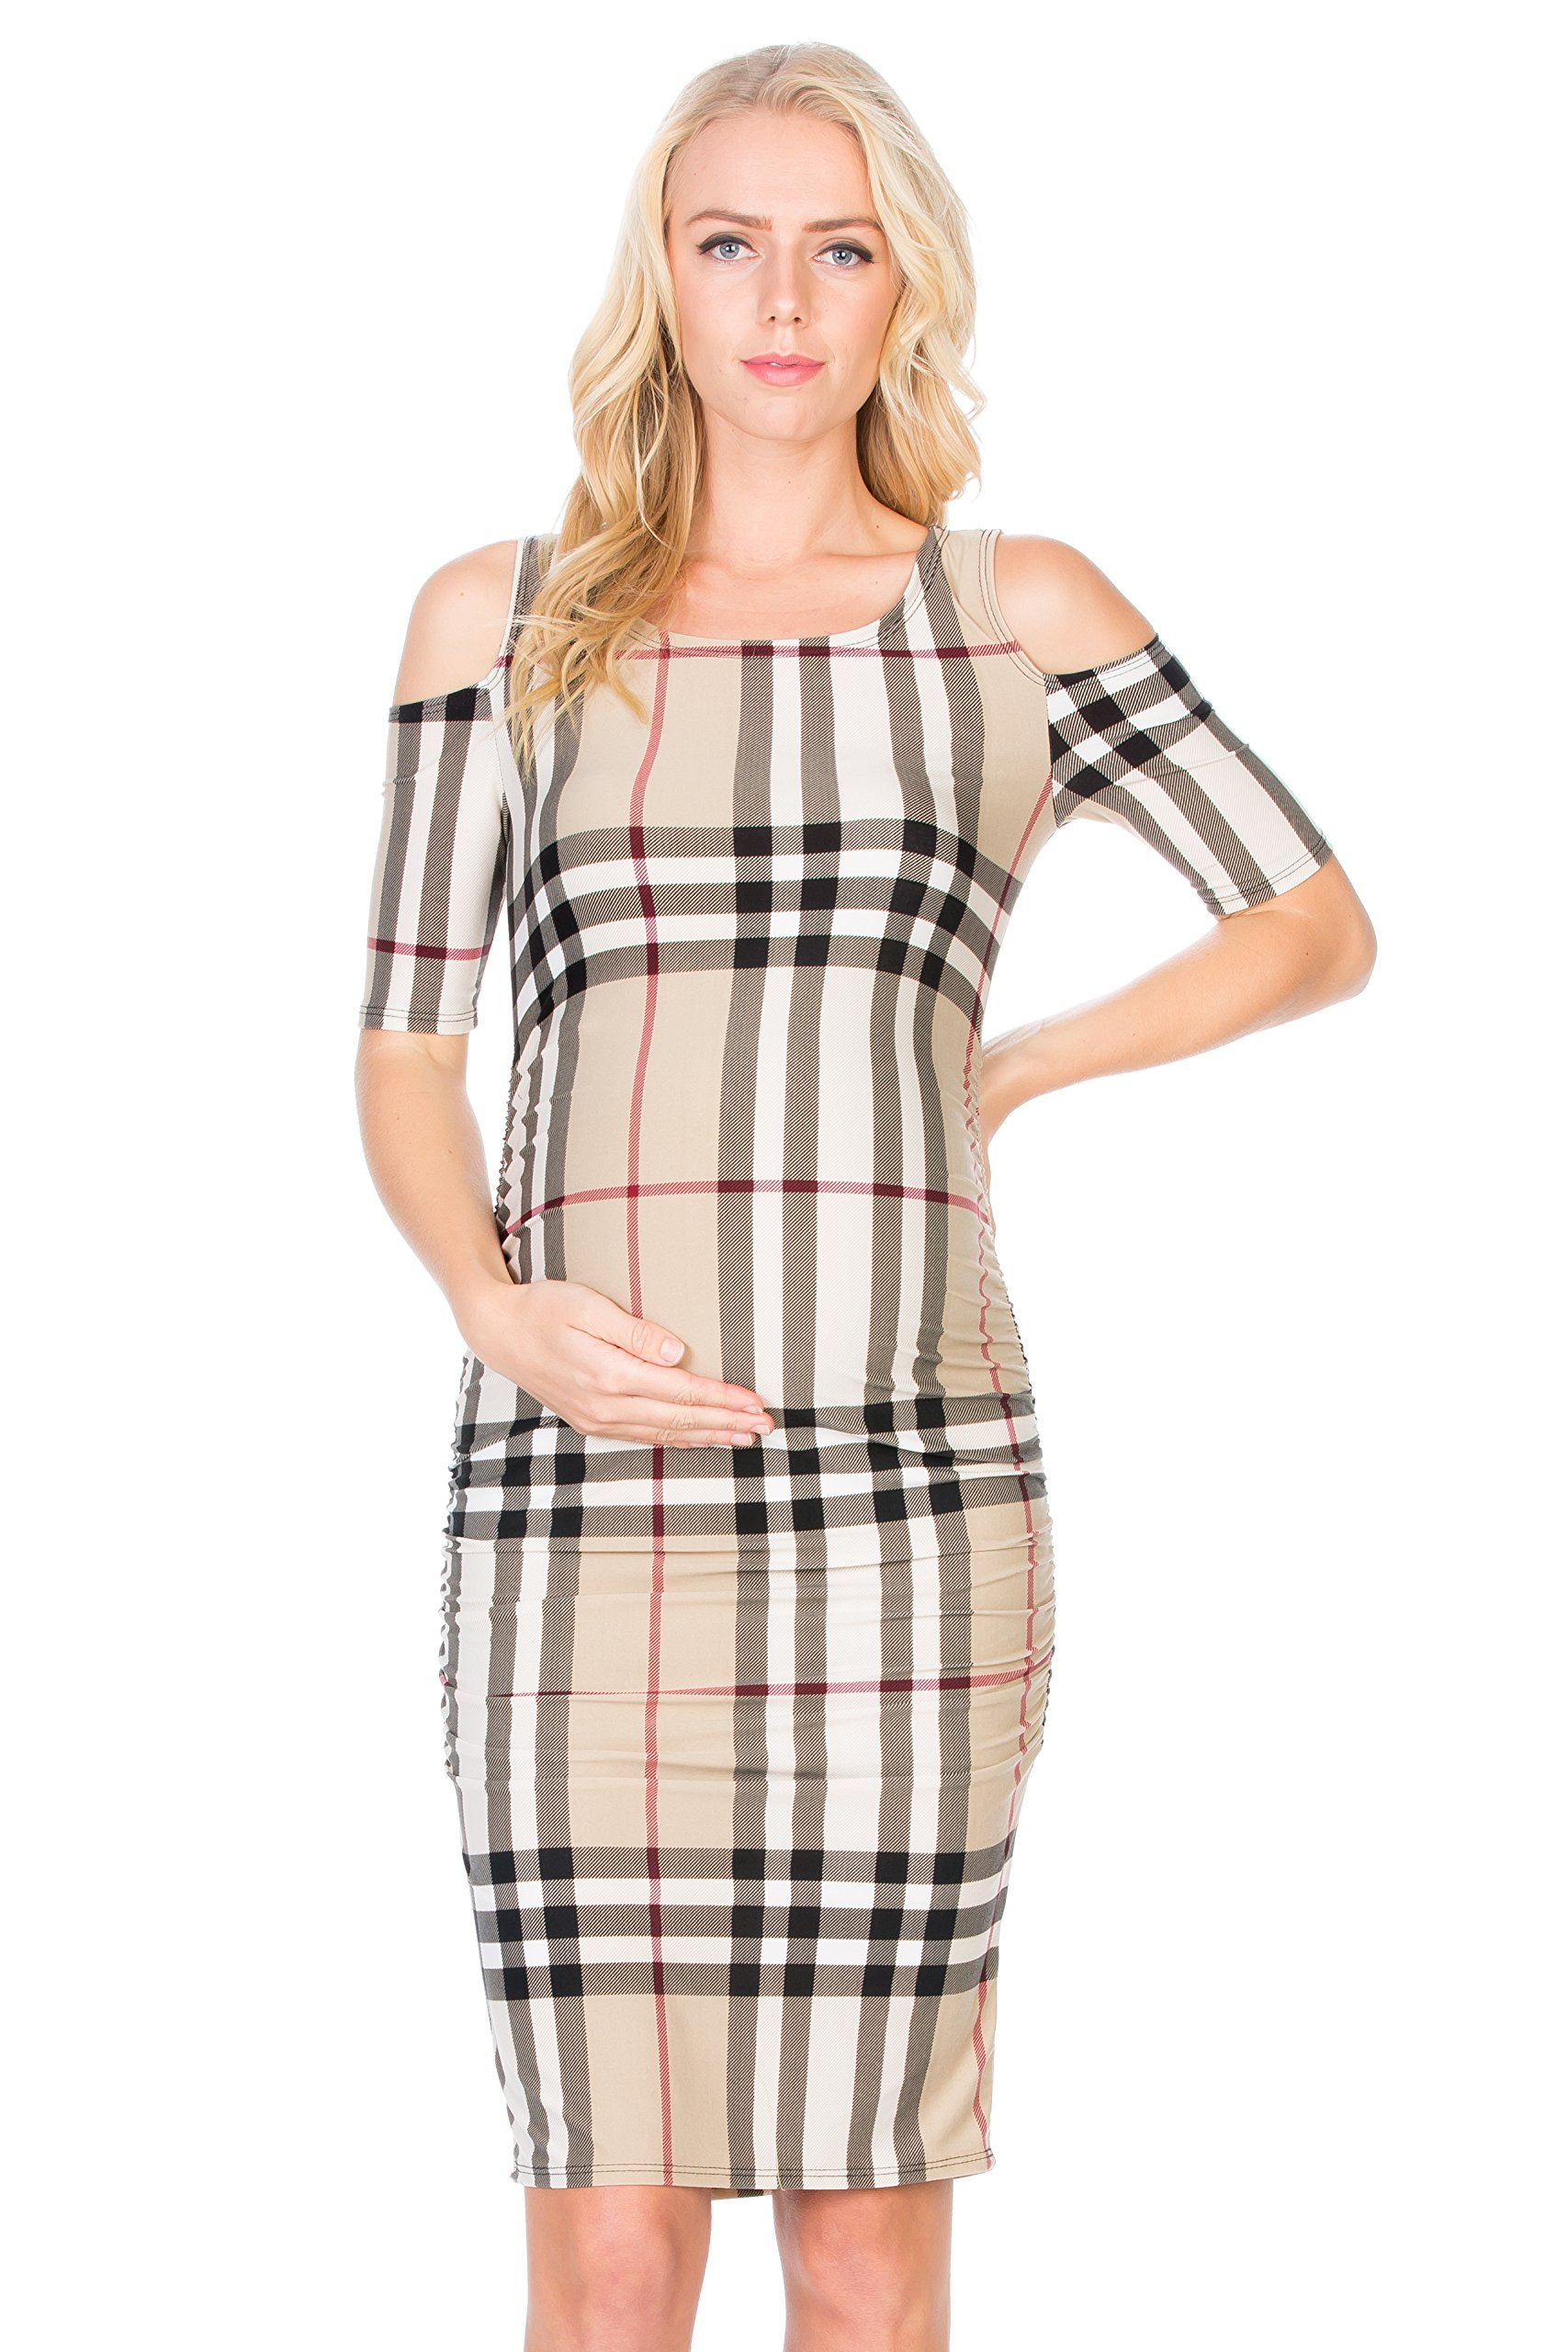 My Bump Women's Various Print Cold Shoulder Fitted Maternity Dress(Made in U.S.A.) (Small, Taupe Plaid)